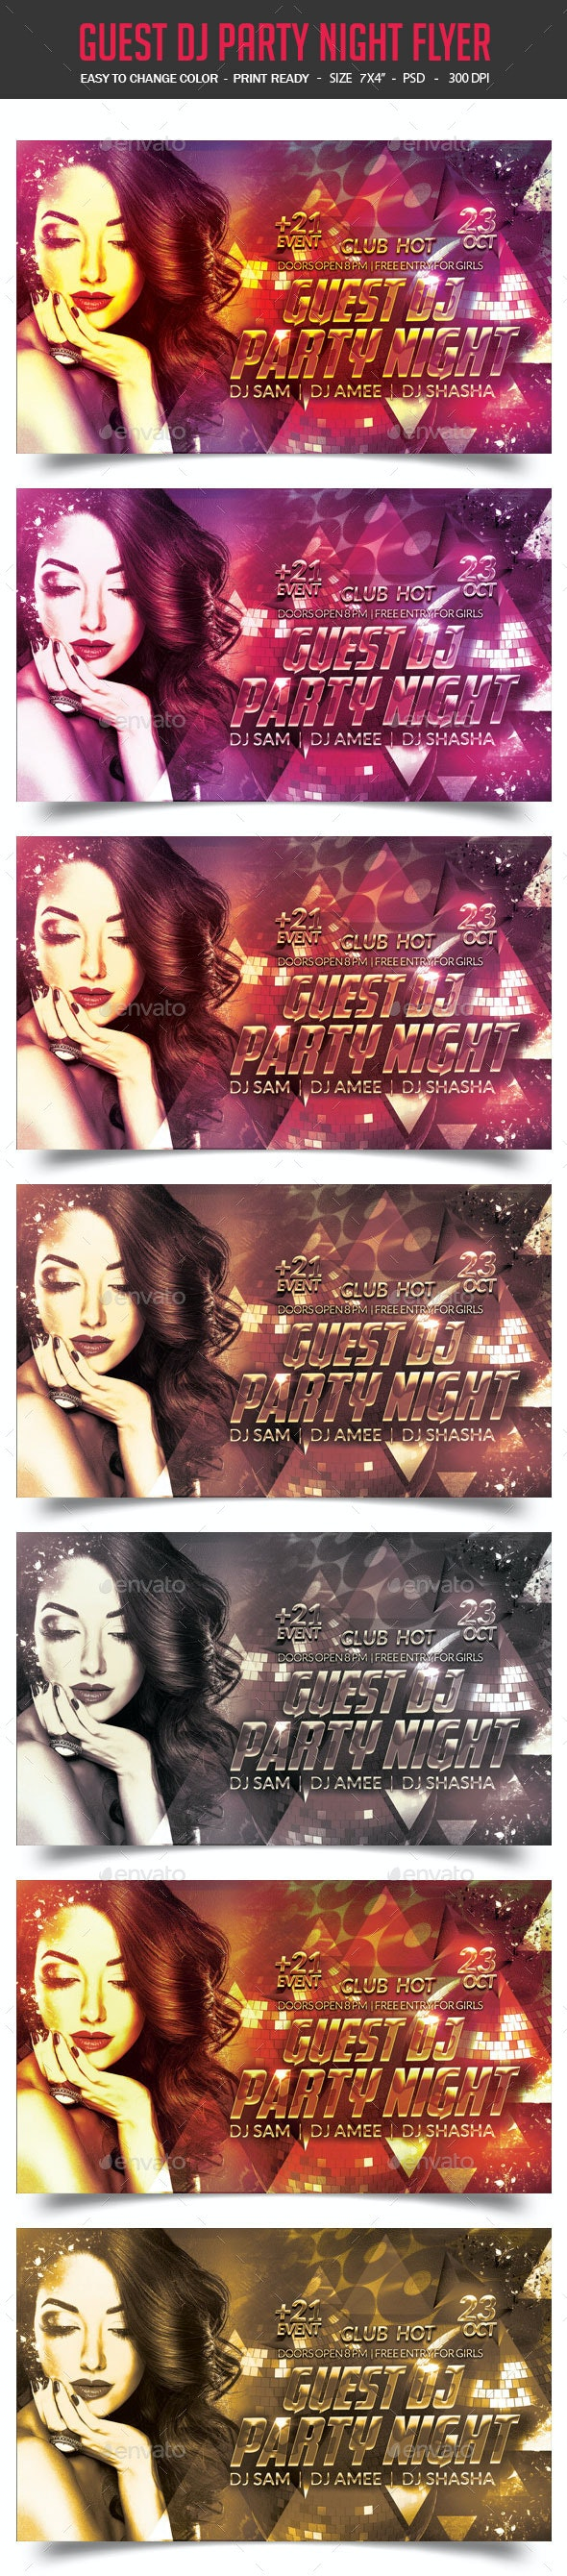 Guest Dj Party Night Flyer - Clubs & Parties Events